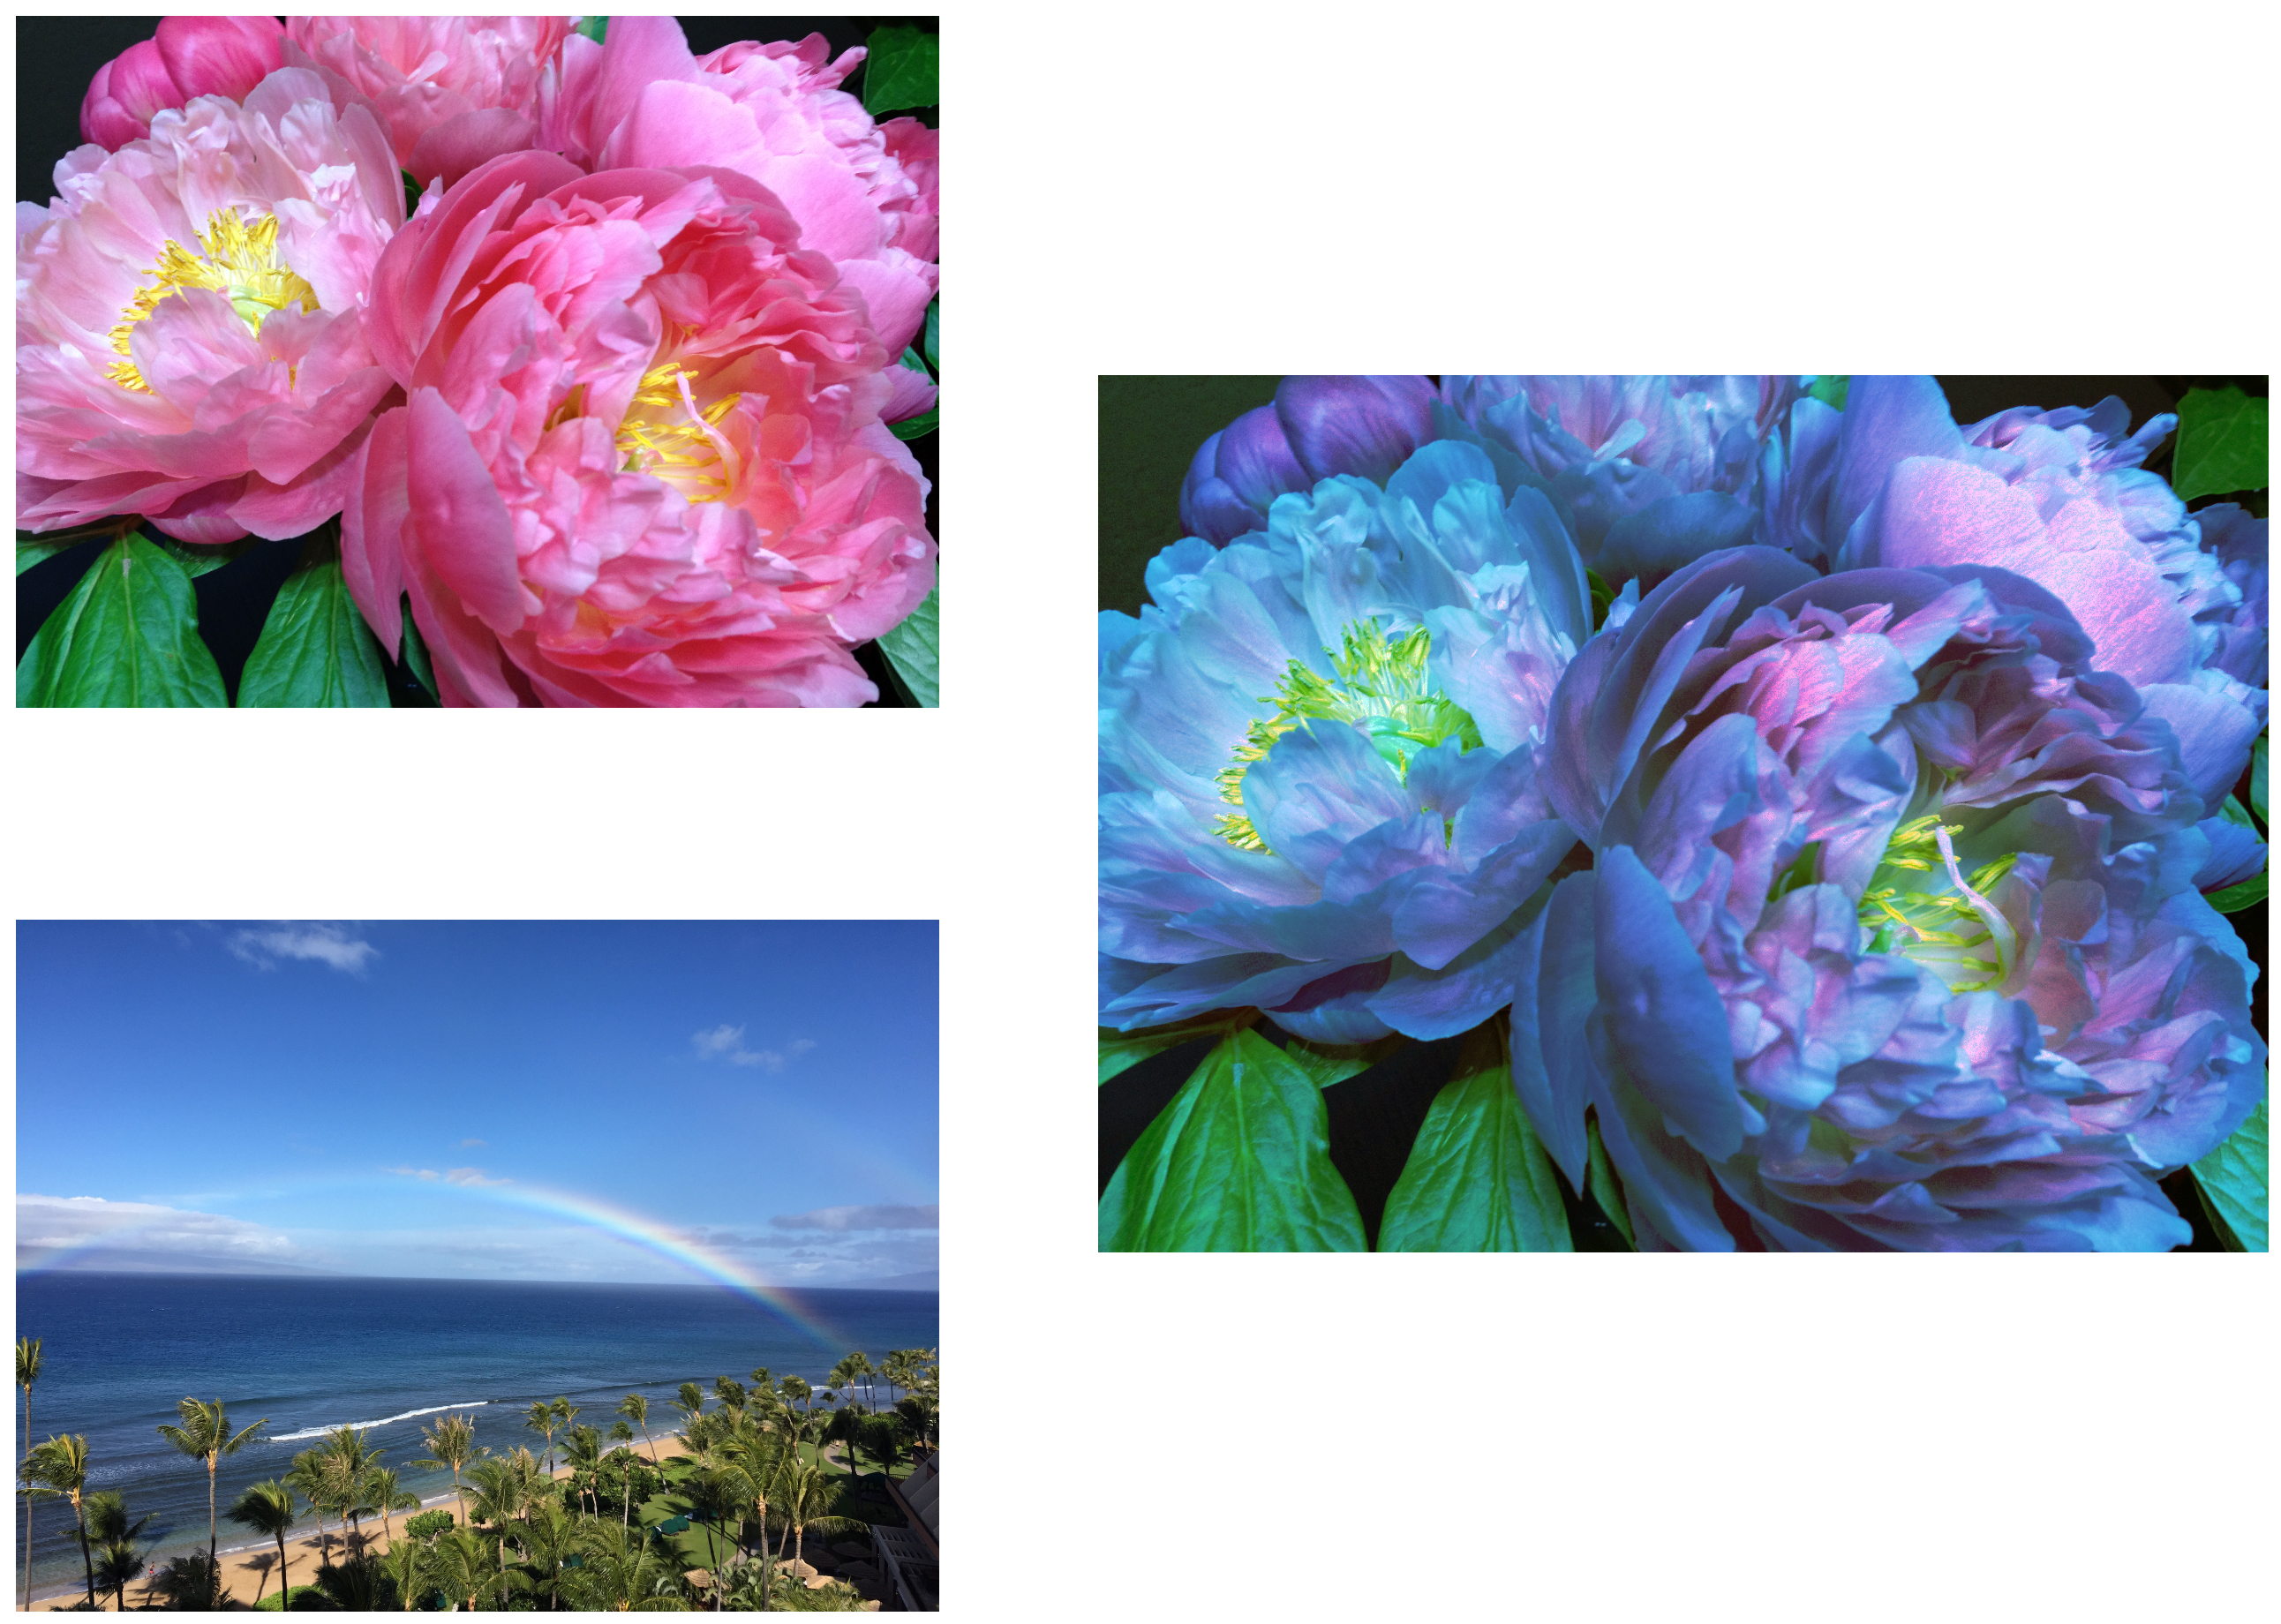 Photos showing original image, histogram source image, and histogram specified result.